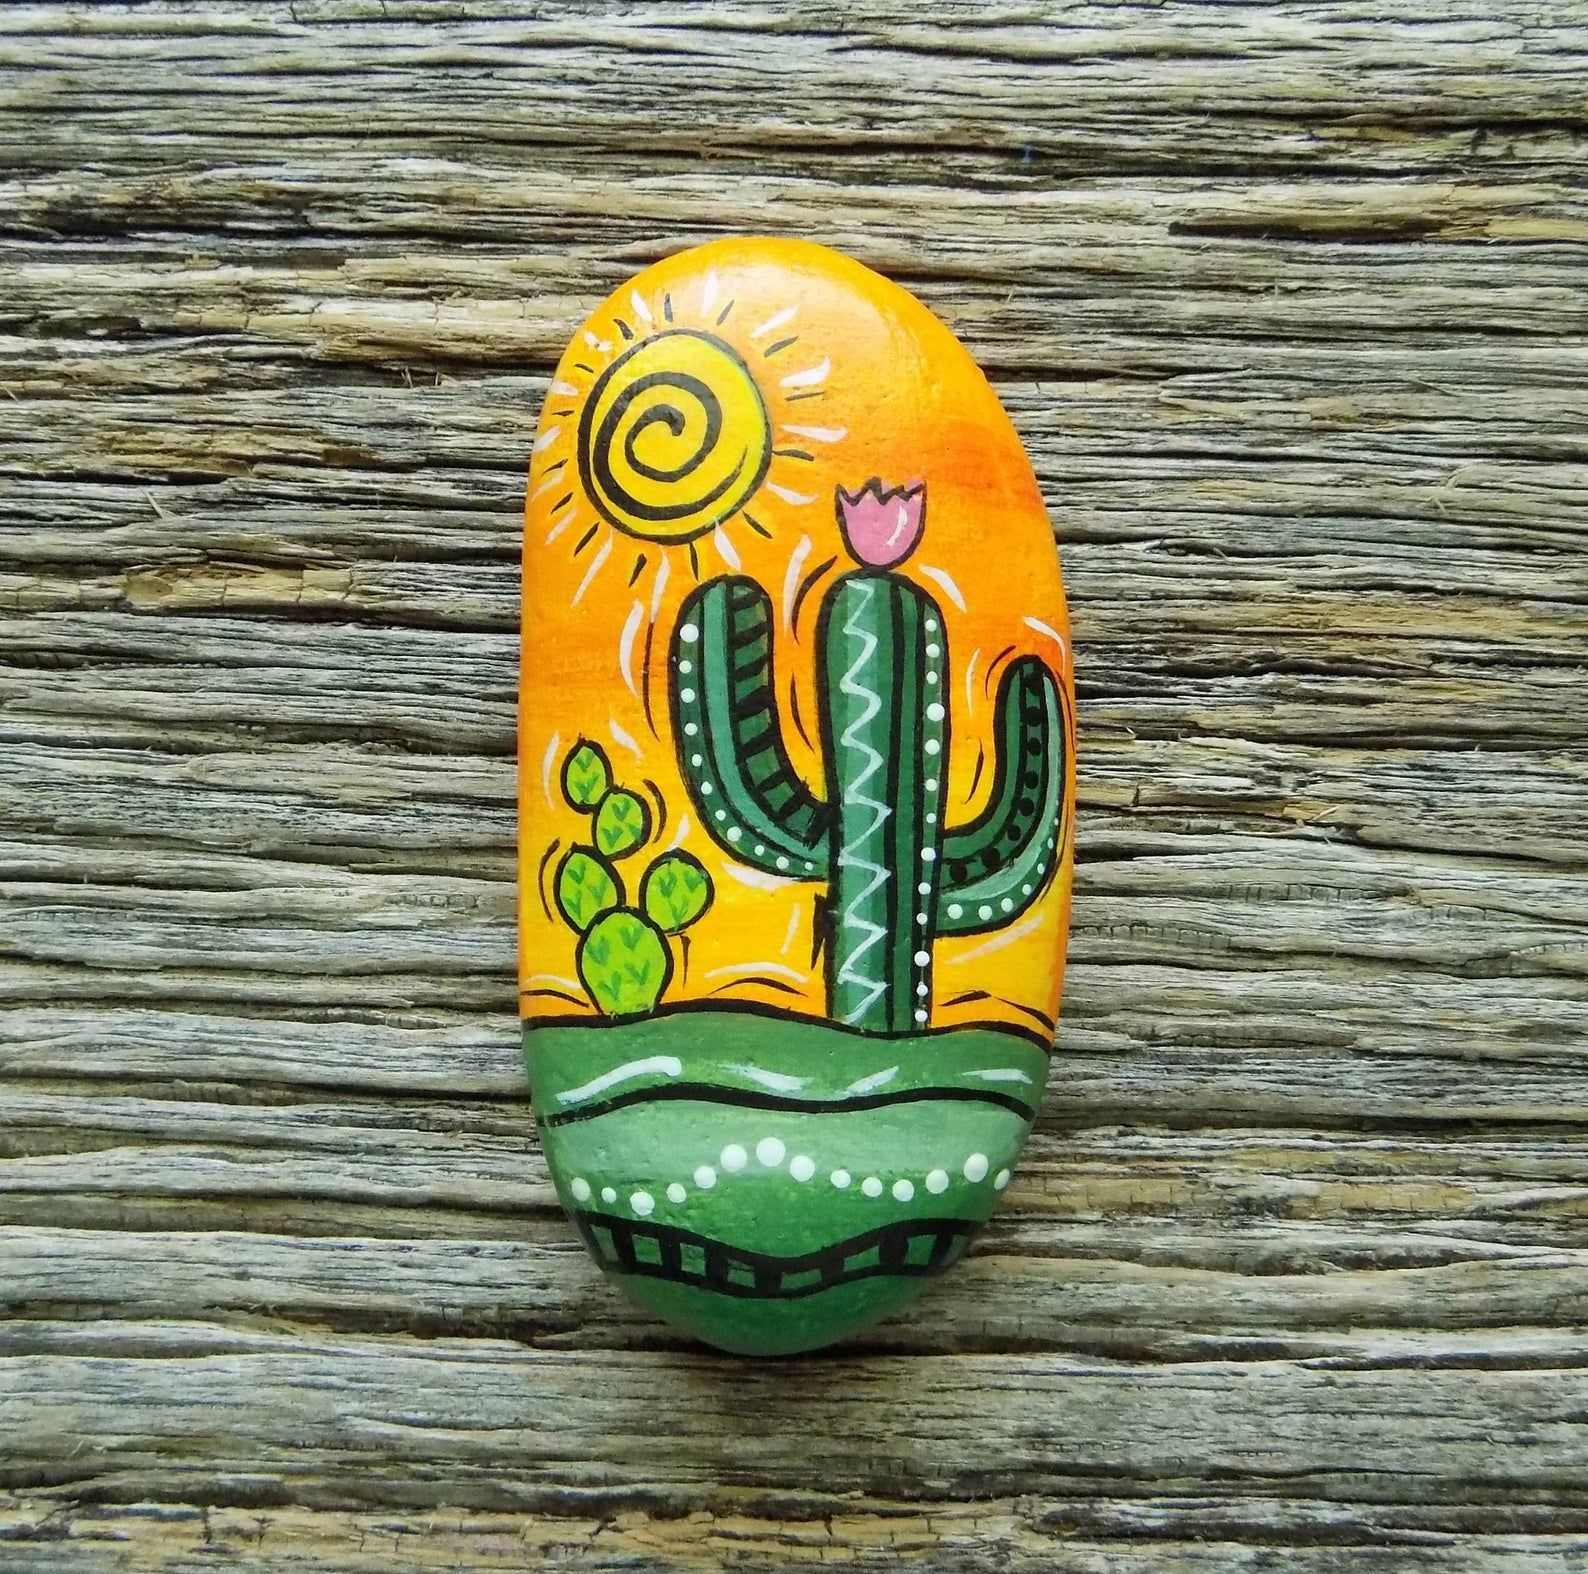 Desert Scene Abstract Cactus Painted RockDecorative Accent Stone Paperweight